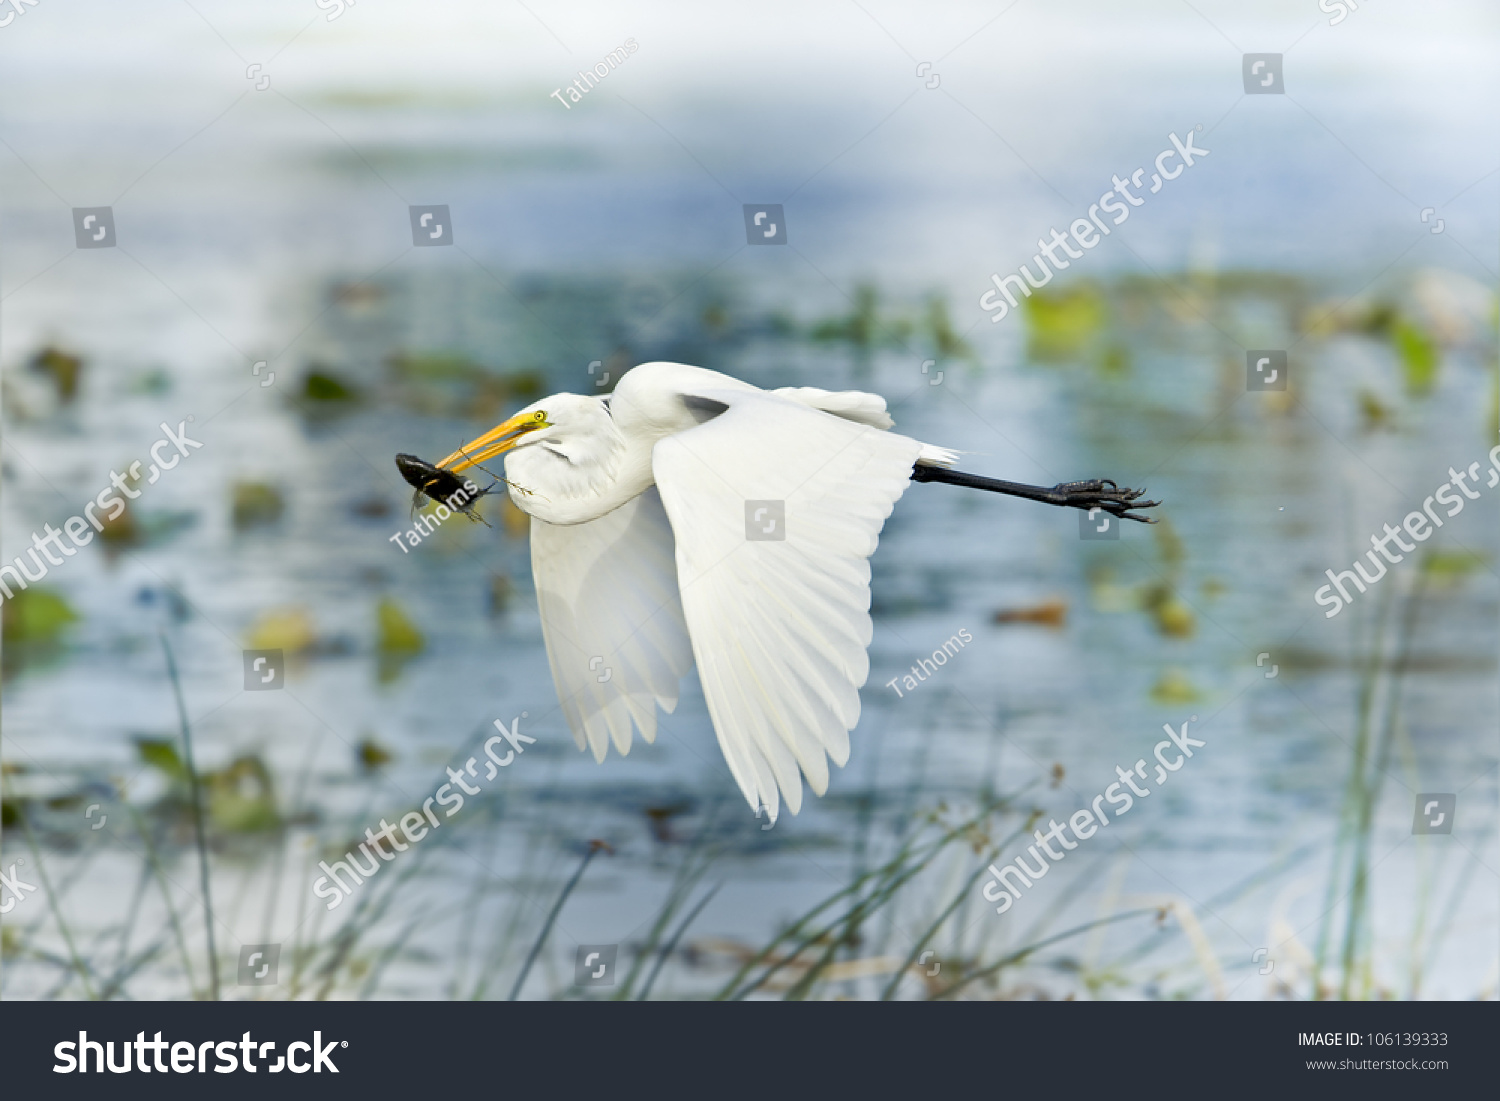 Great Egret with catch in beak flying above lake. Latin name - Ardea alba.